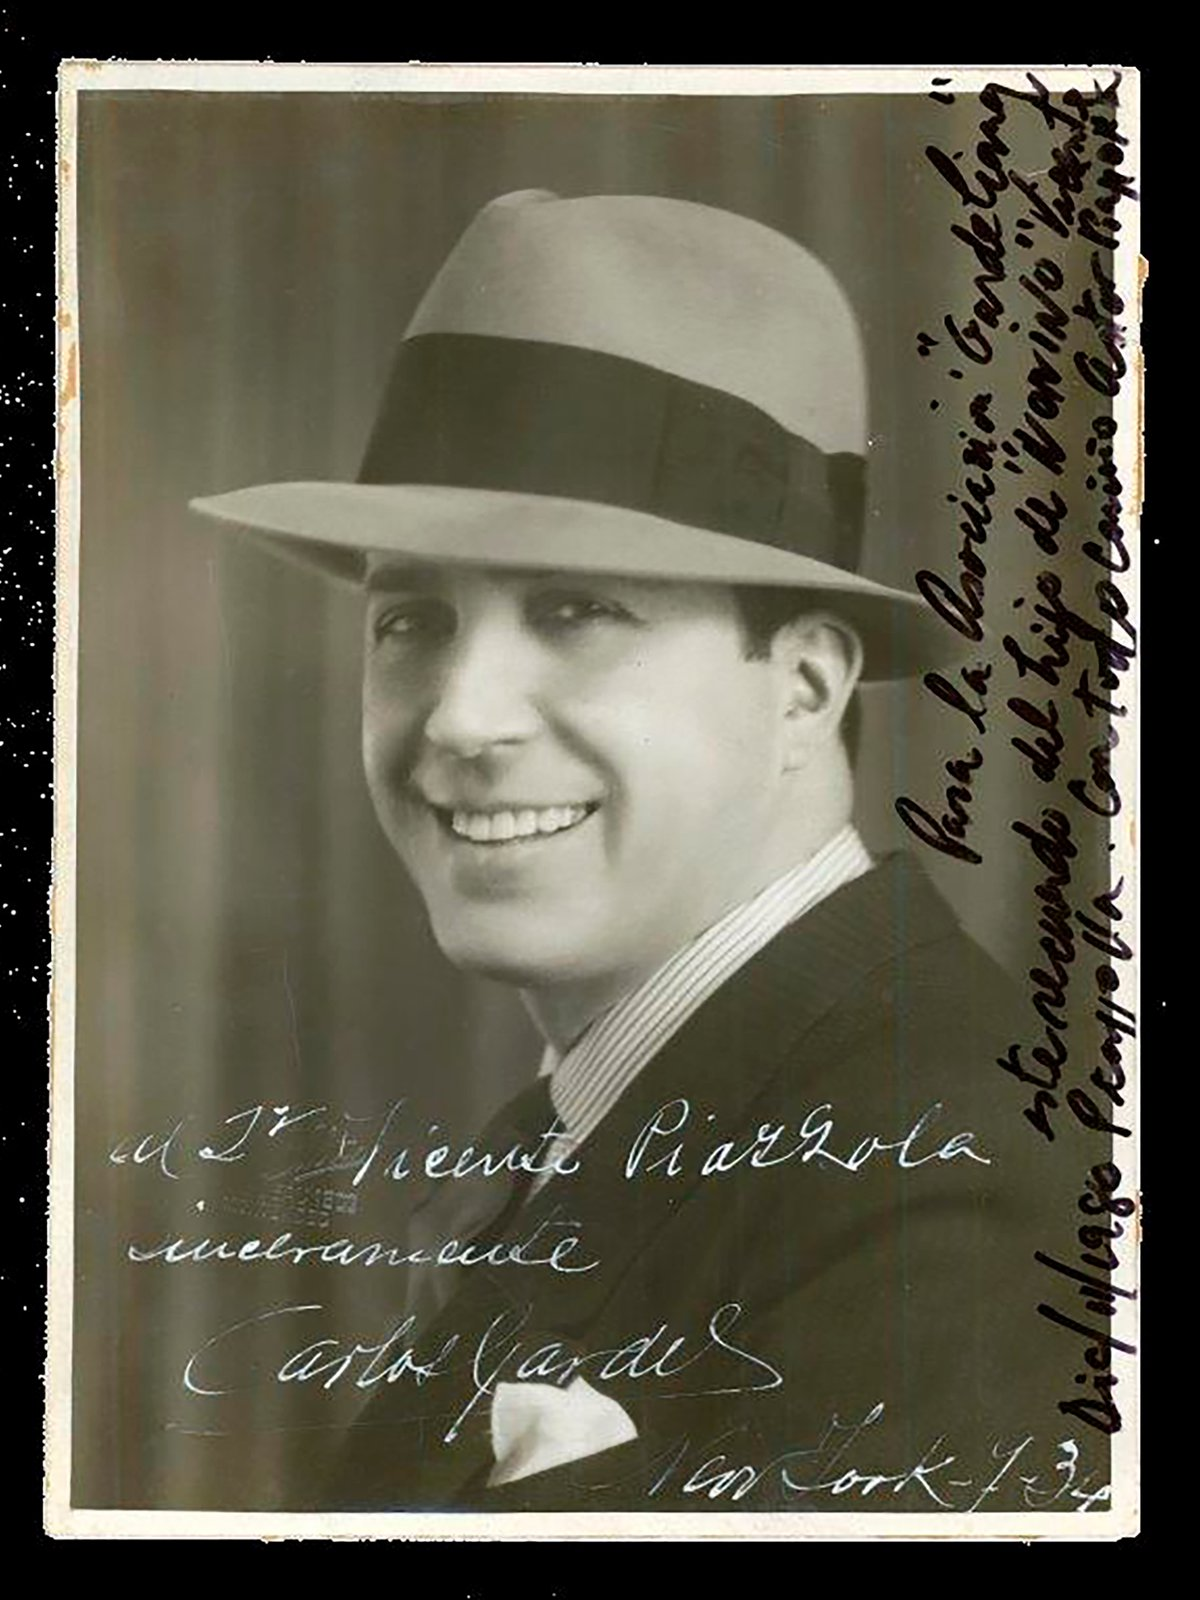 Gardel's picture to Piazzolla's father